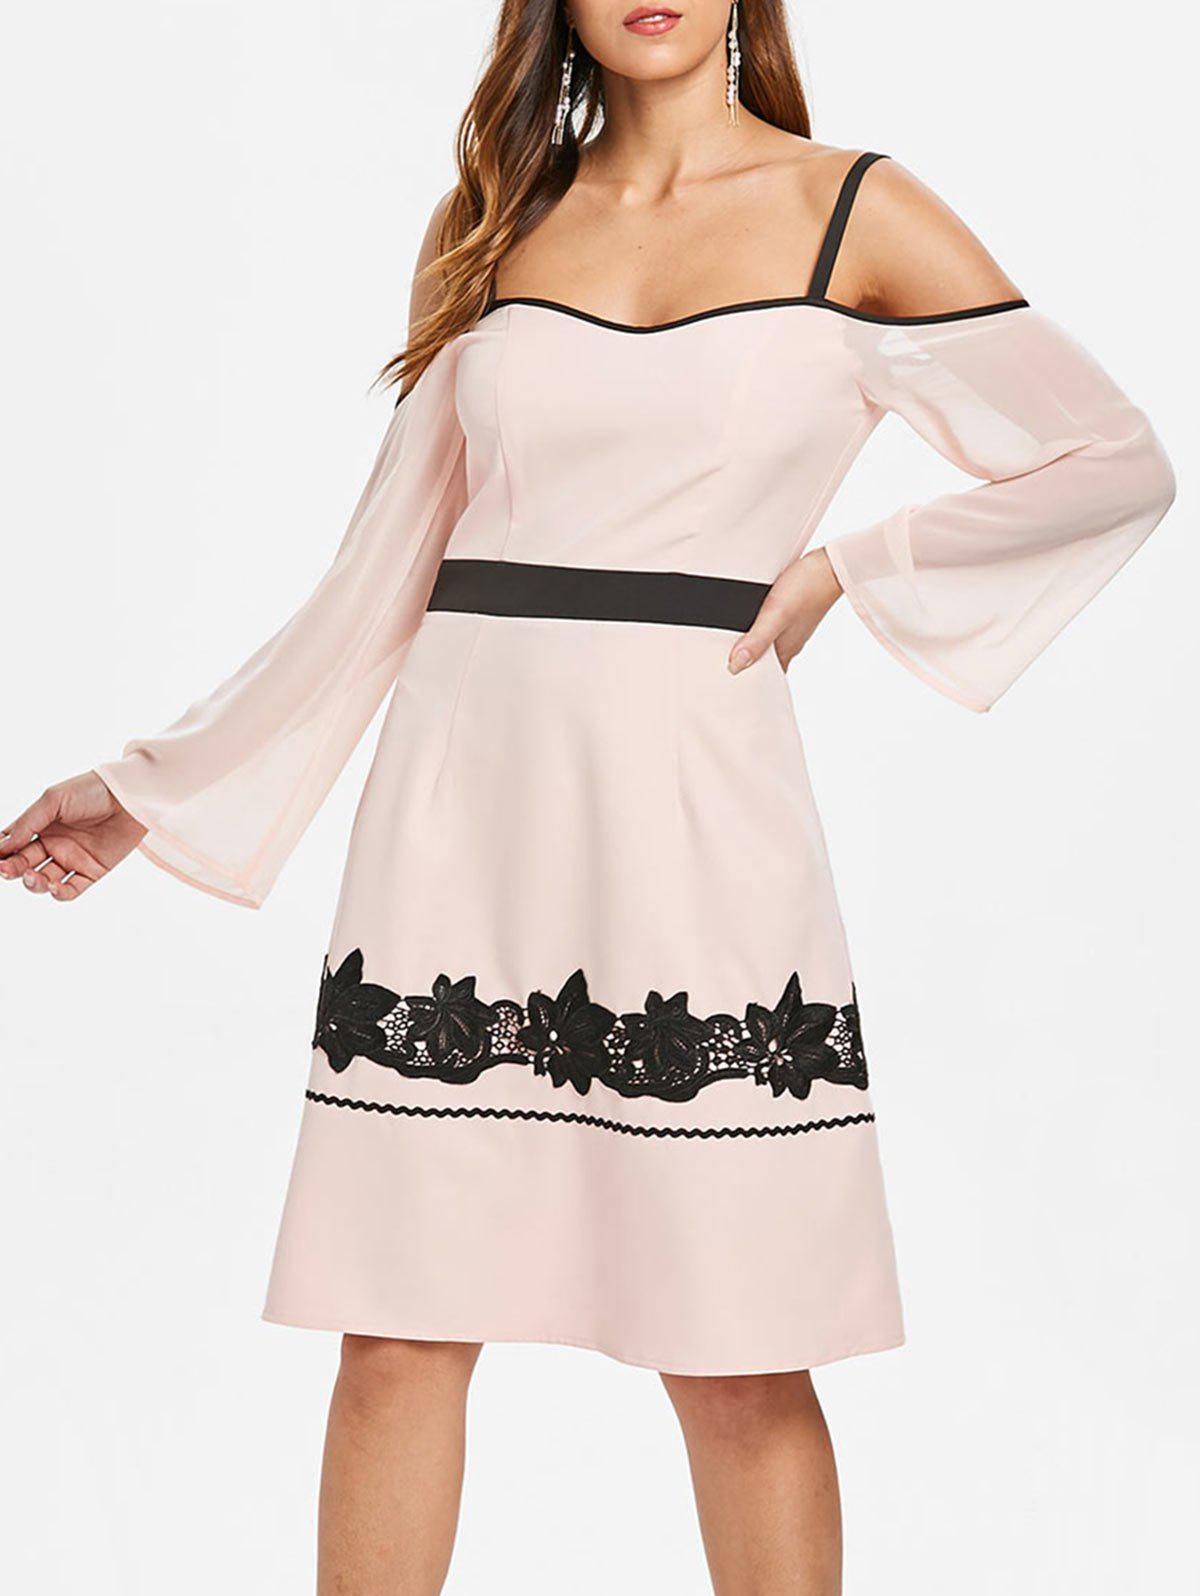 Color Block Lace Spaghetti Strap Dress - PINK BUBBLEGUM S